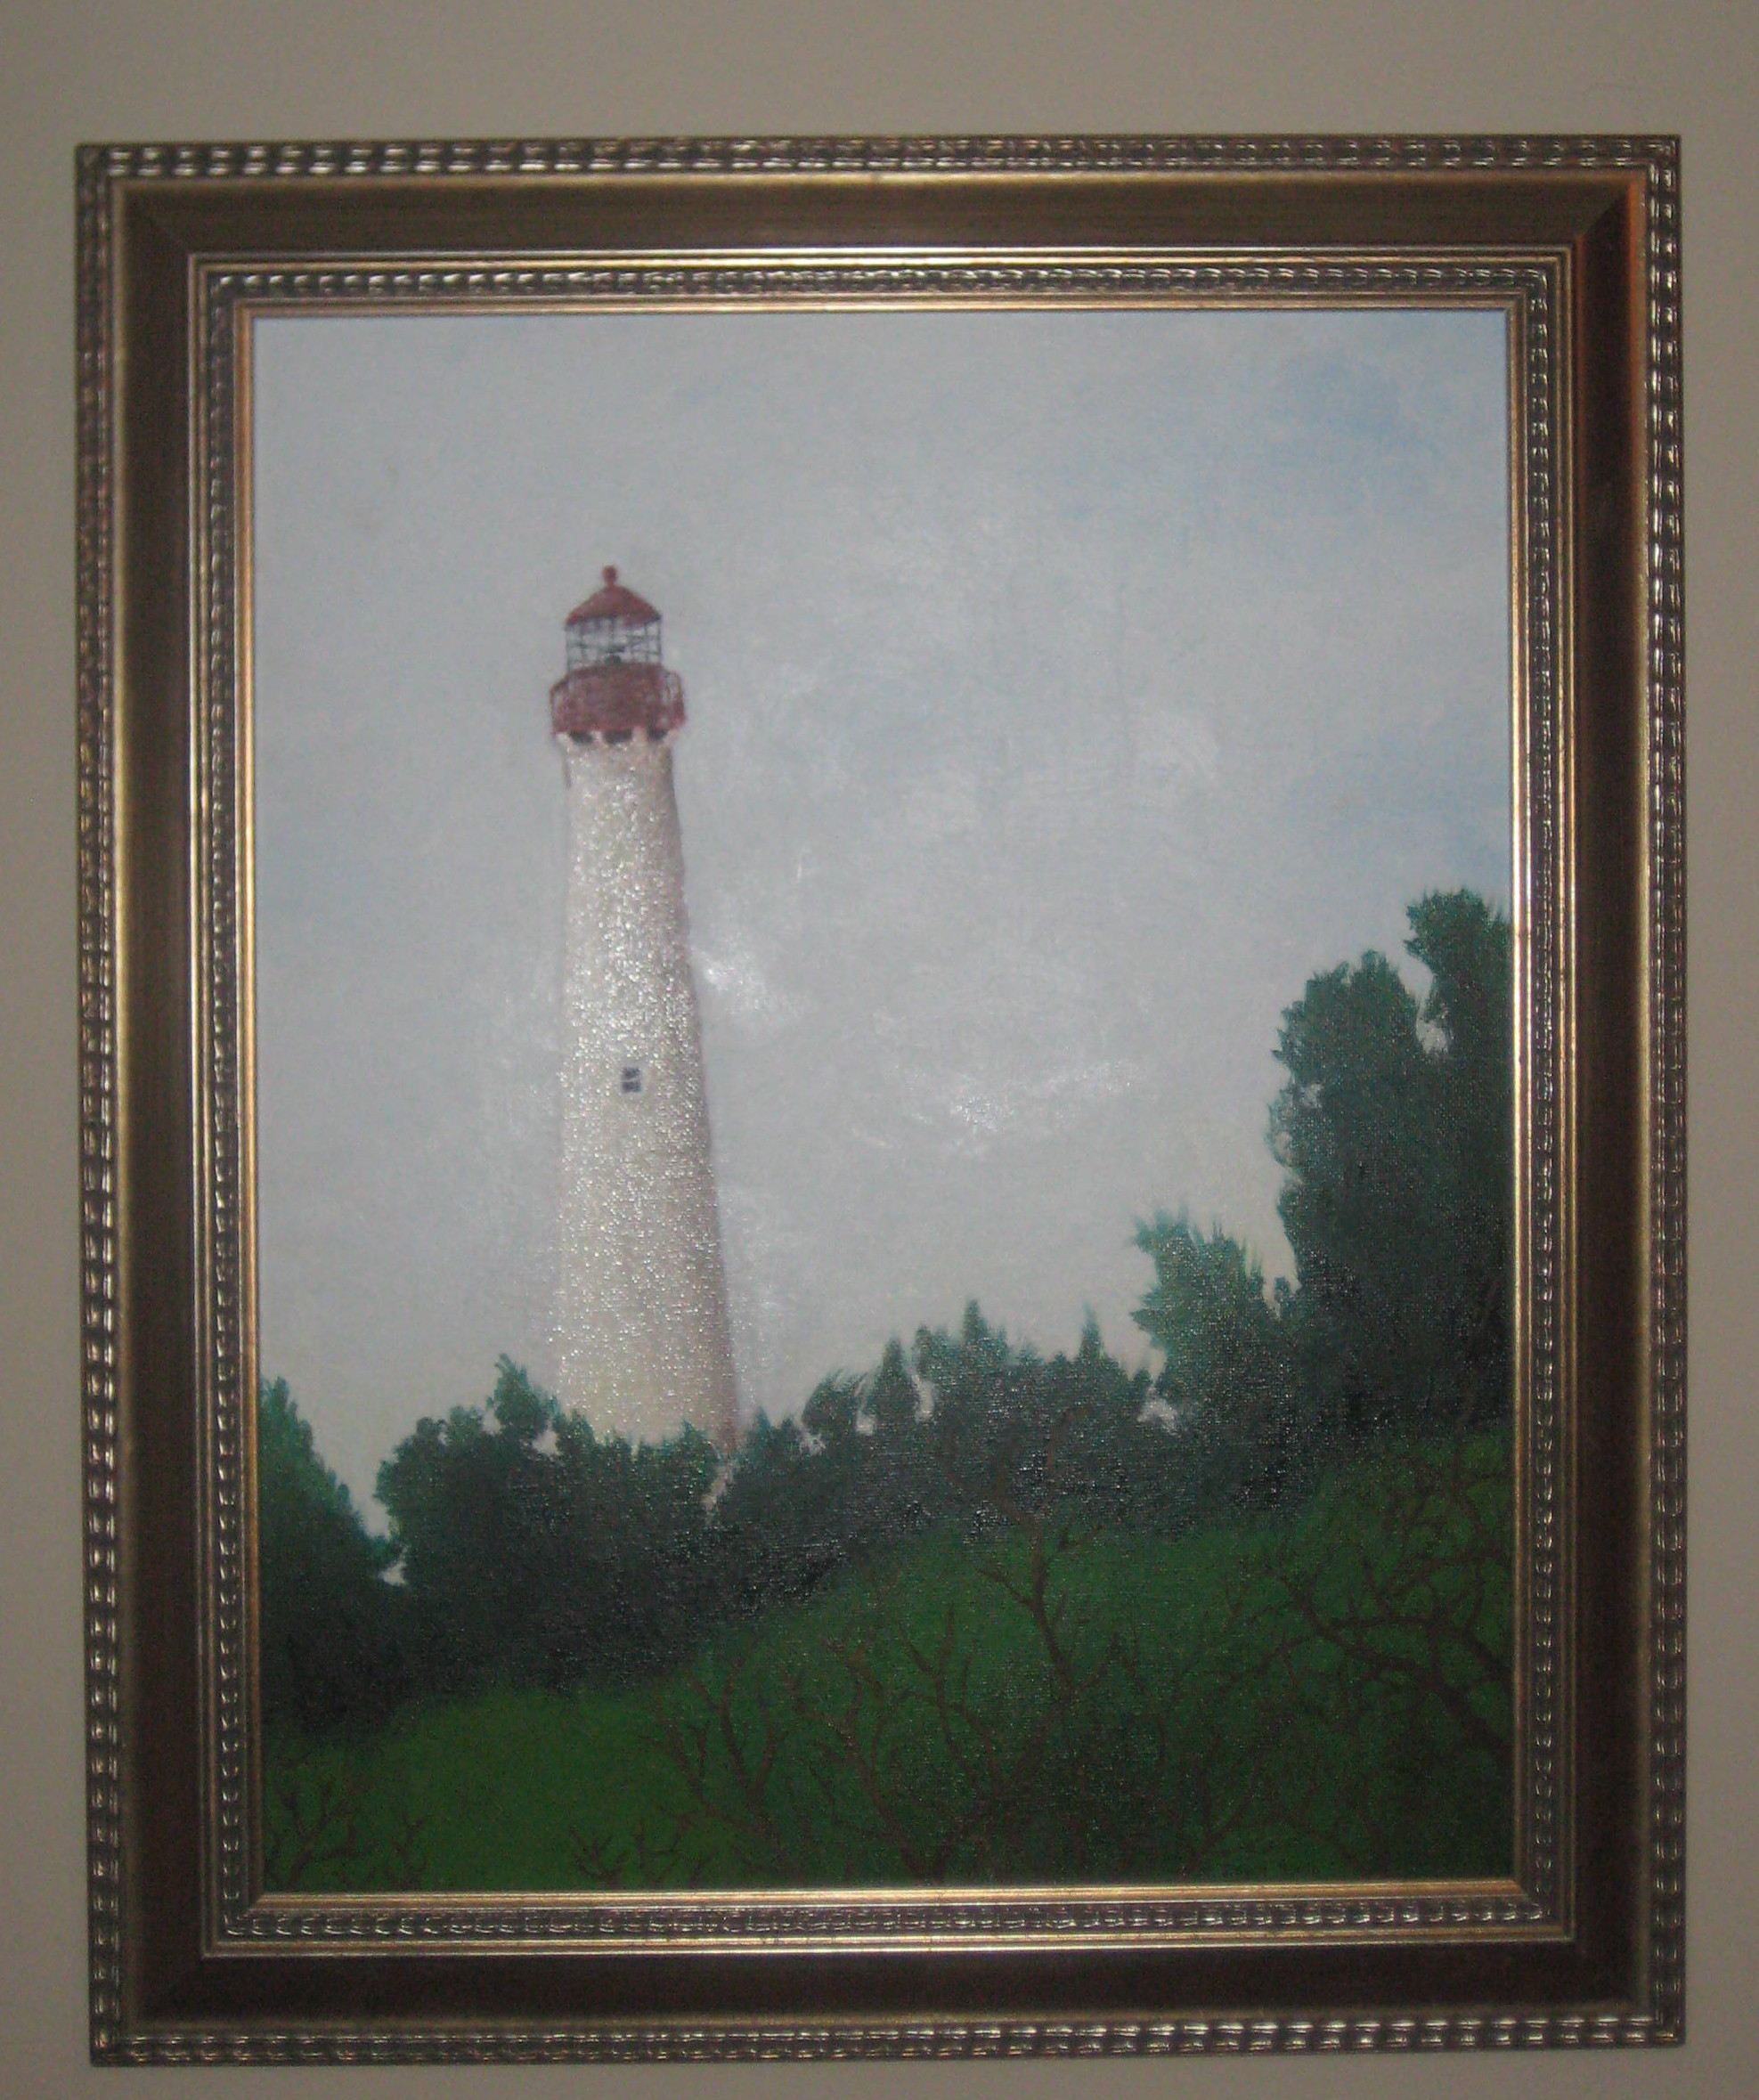 The Cape May Lighthouse, by Nick Singer